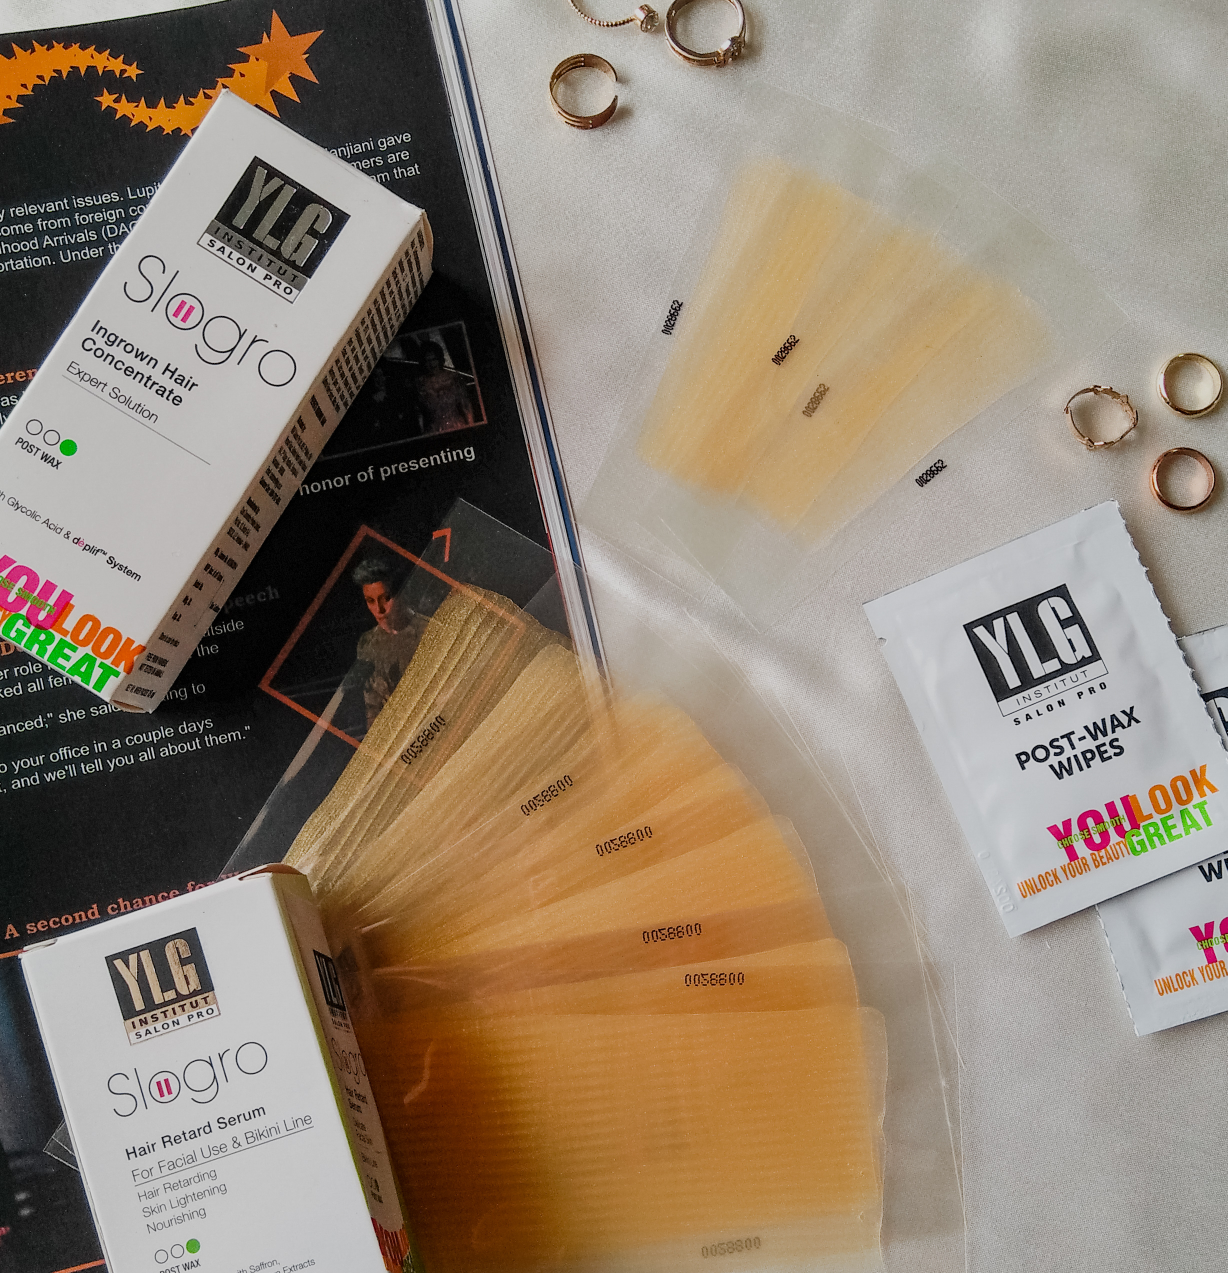 YLG Gold Glitter Brightening Cold Wax Strips - Review    image